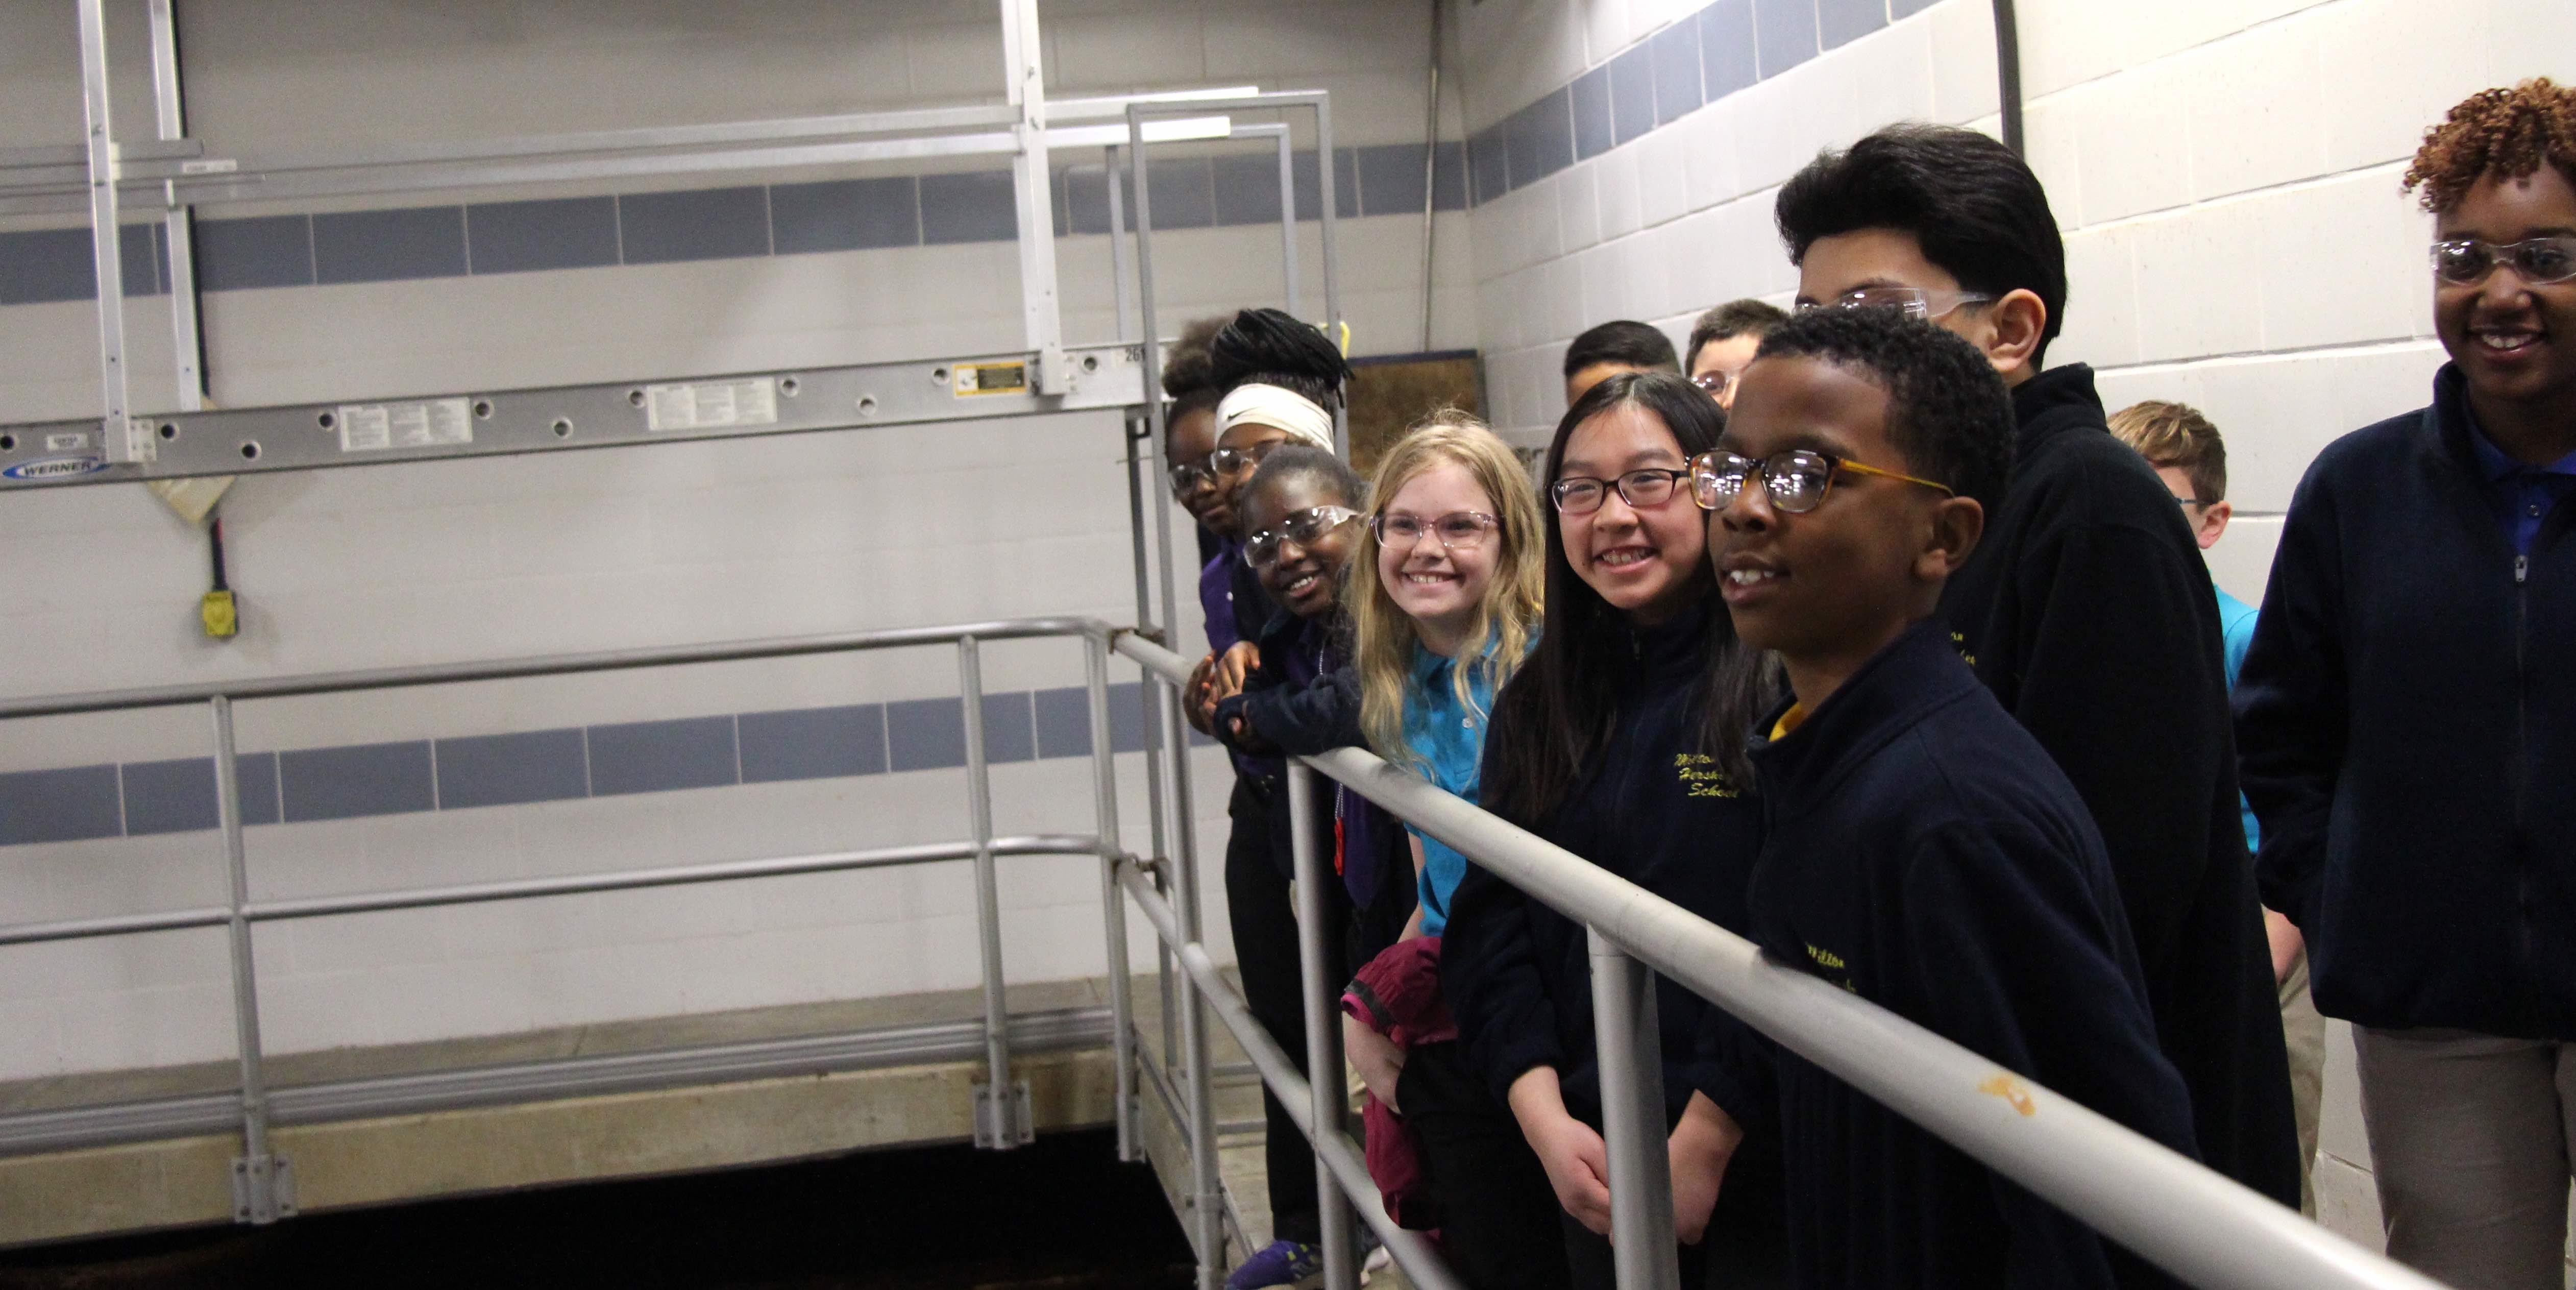 MHS students learned about the Chesapeake Bay watershed